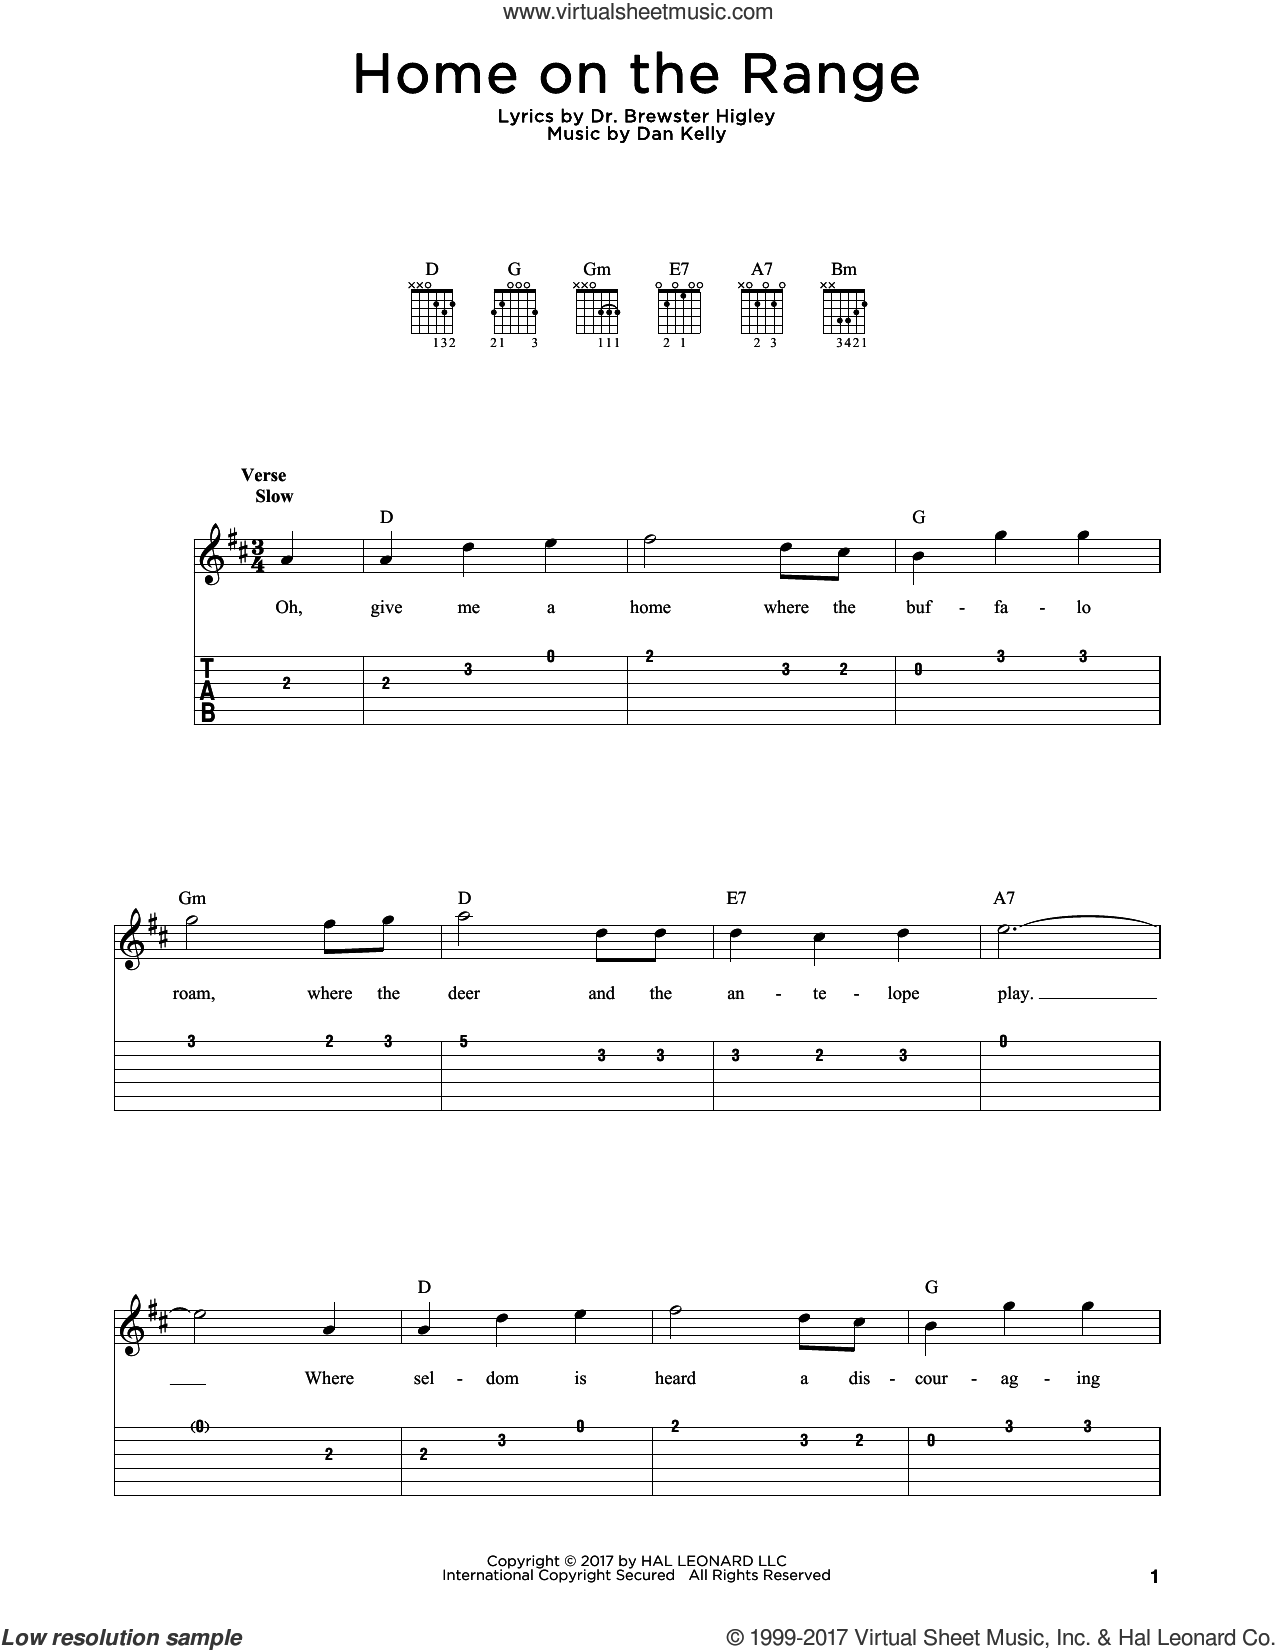 Home On The Range sheet music for guitar solo by Dan Kelly and Dr. Brewster Higley, intermediate skill level